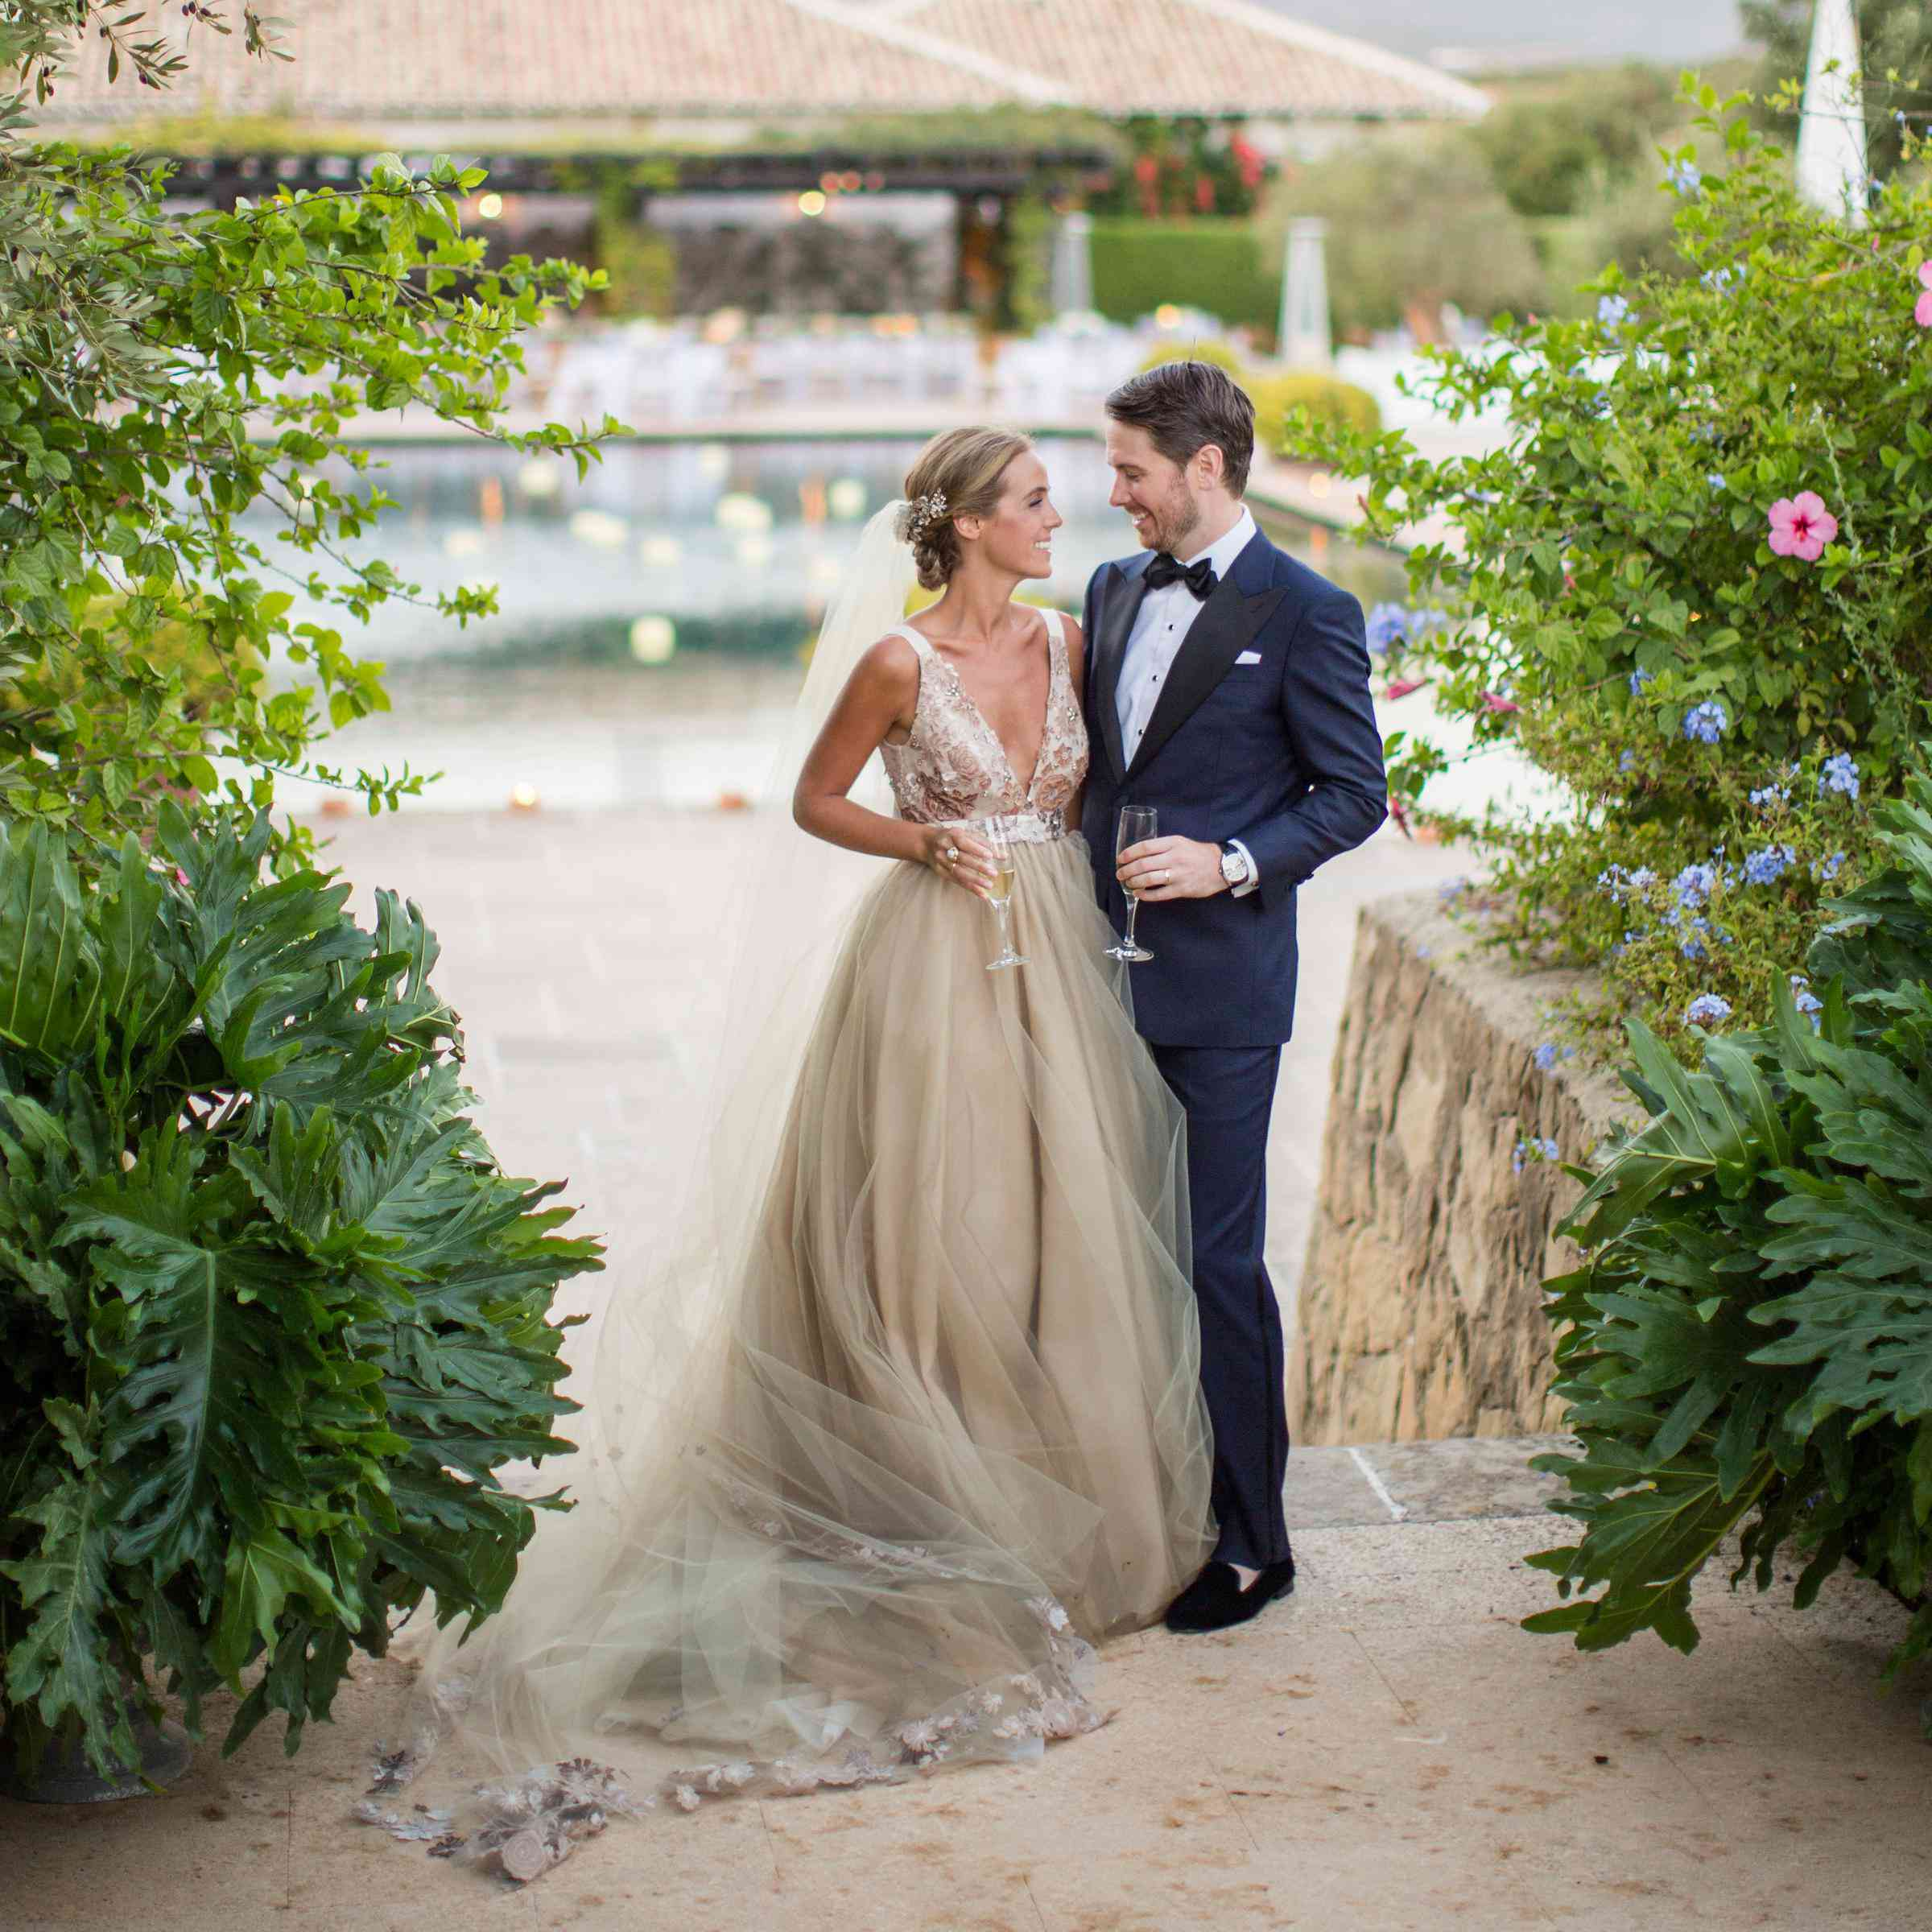 A Stunning Spanish Garden Wedding And Pool Party